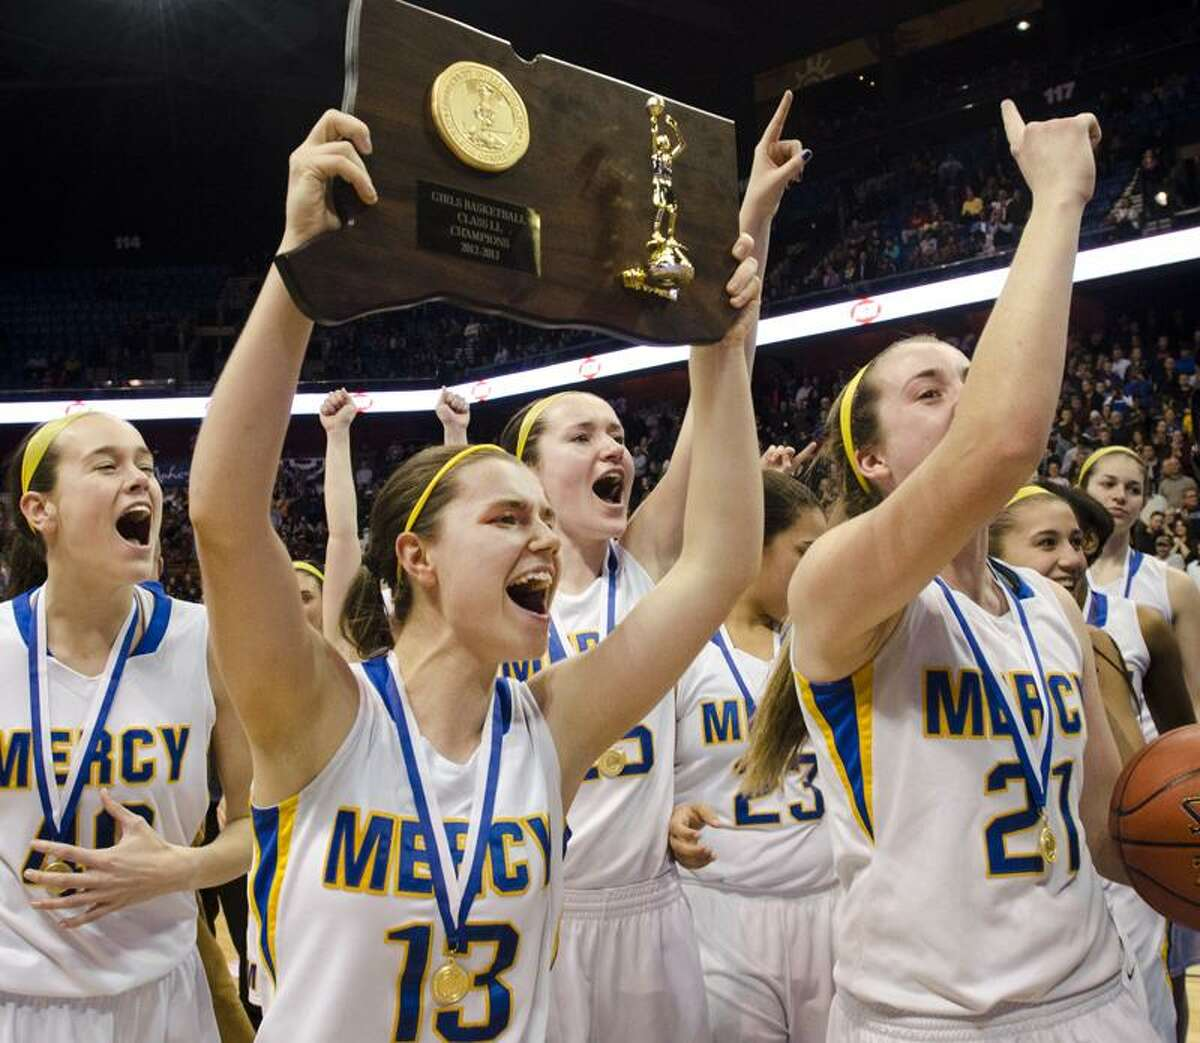 Members of the Mercy girls' basketball team celebrate after beating Lauralton Hall to win the Class LL championship on Saturday at Mohegan Sun Arena. (Melanie Stengel/Register)